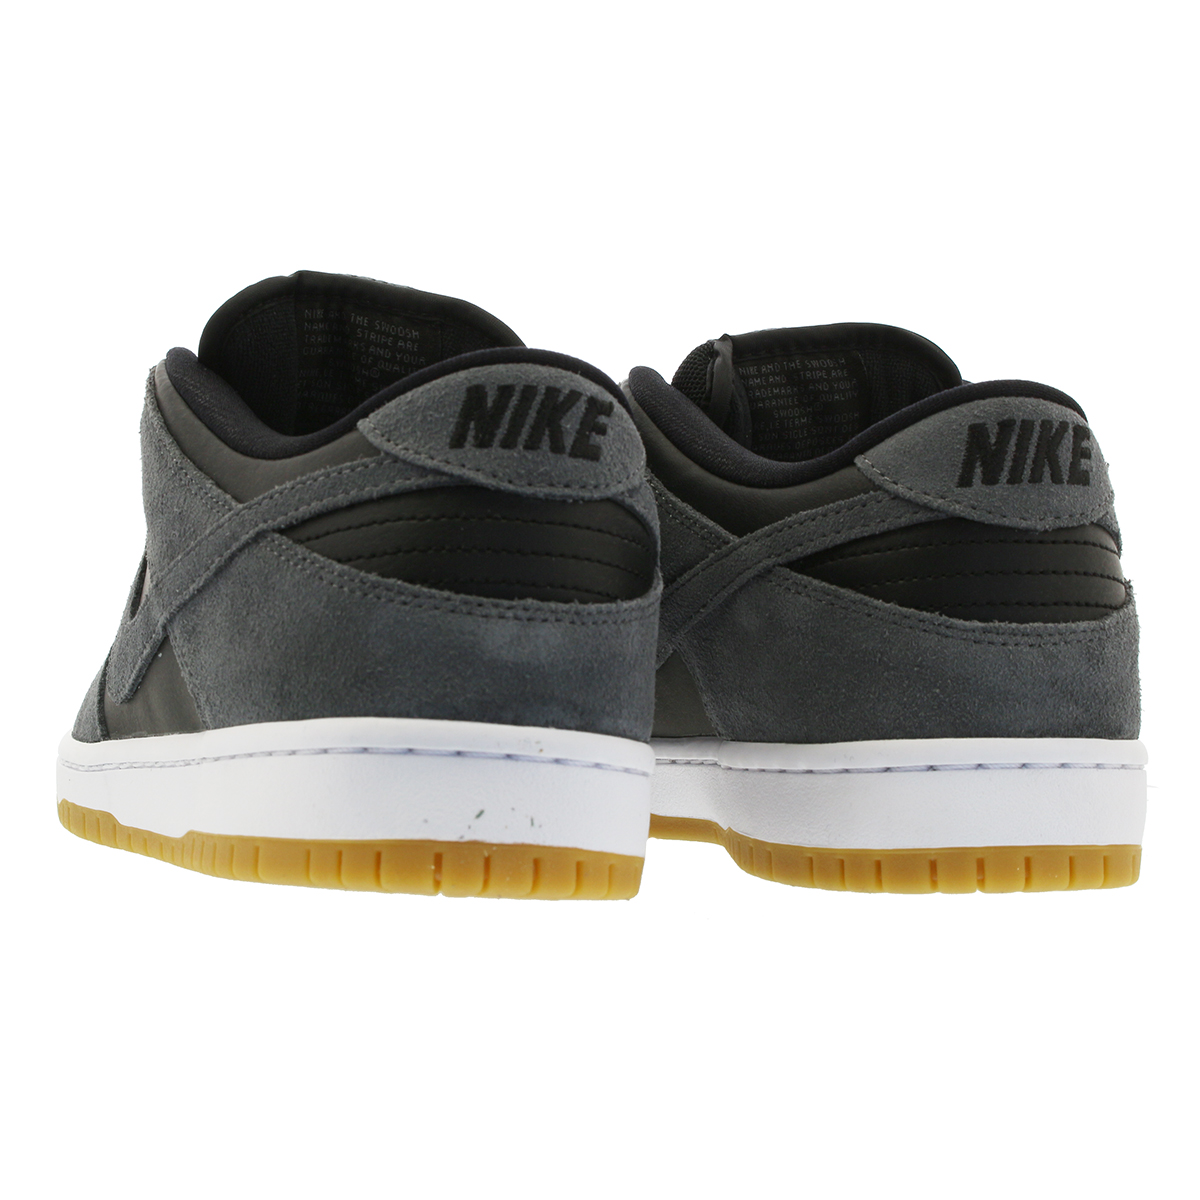 low priced 95fff 94a7b ... NIKE SB DUNK LOW TRD Nike SB dunk low TRD DARK GREY BLACK WHITE ...